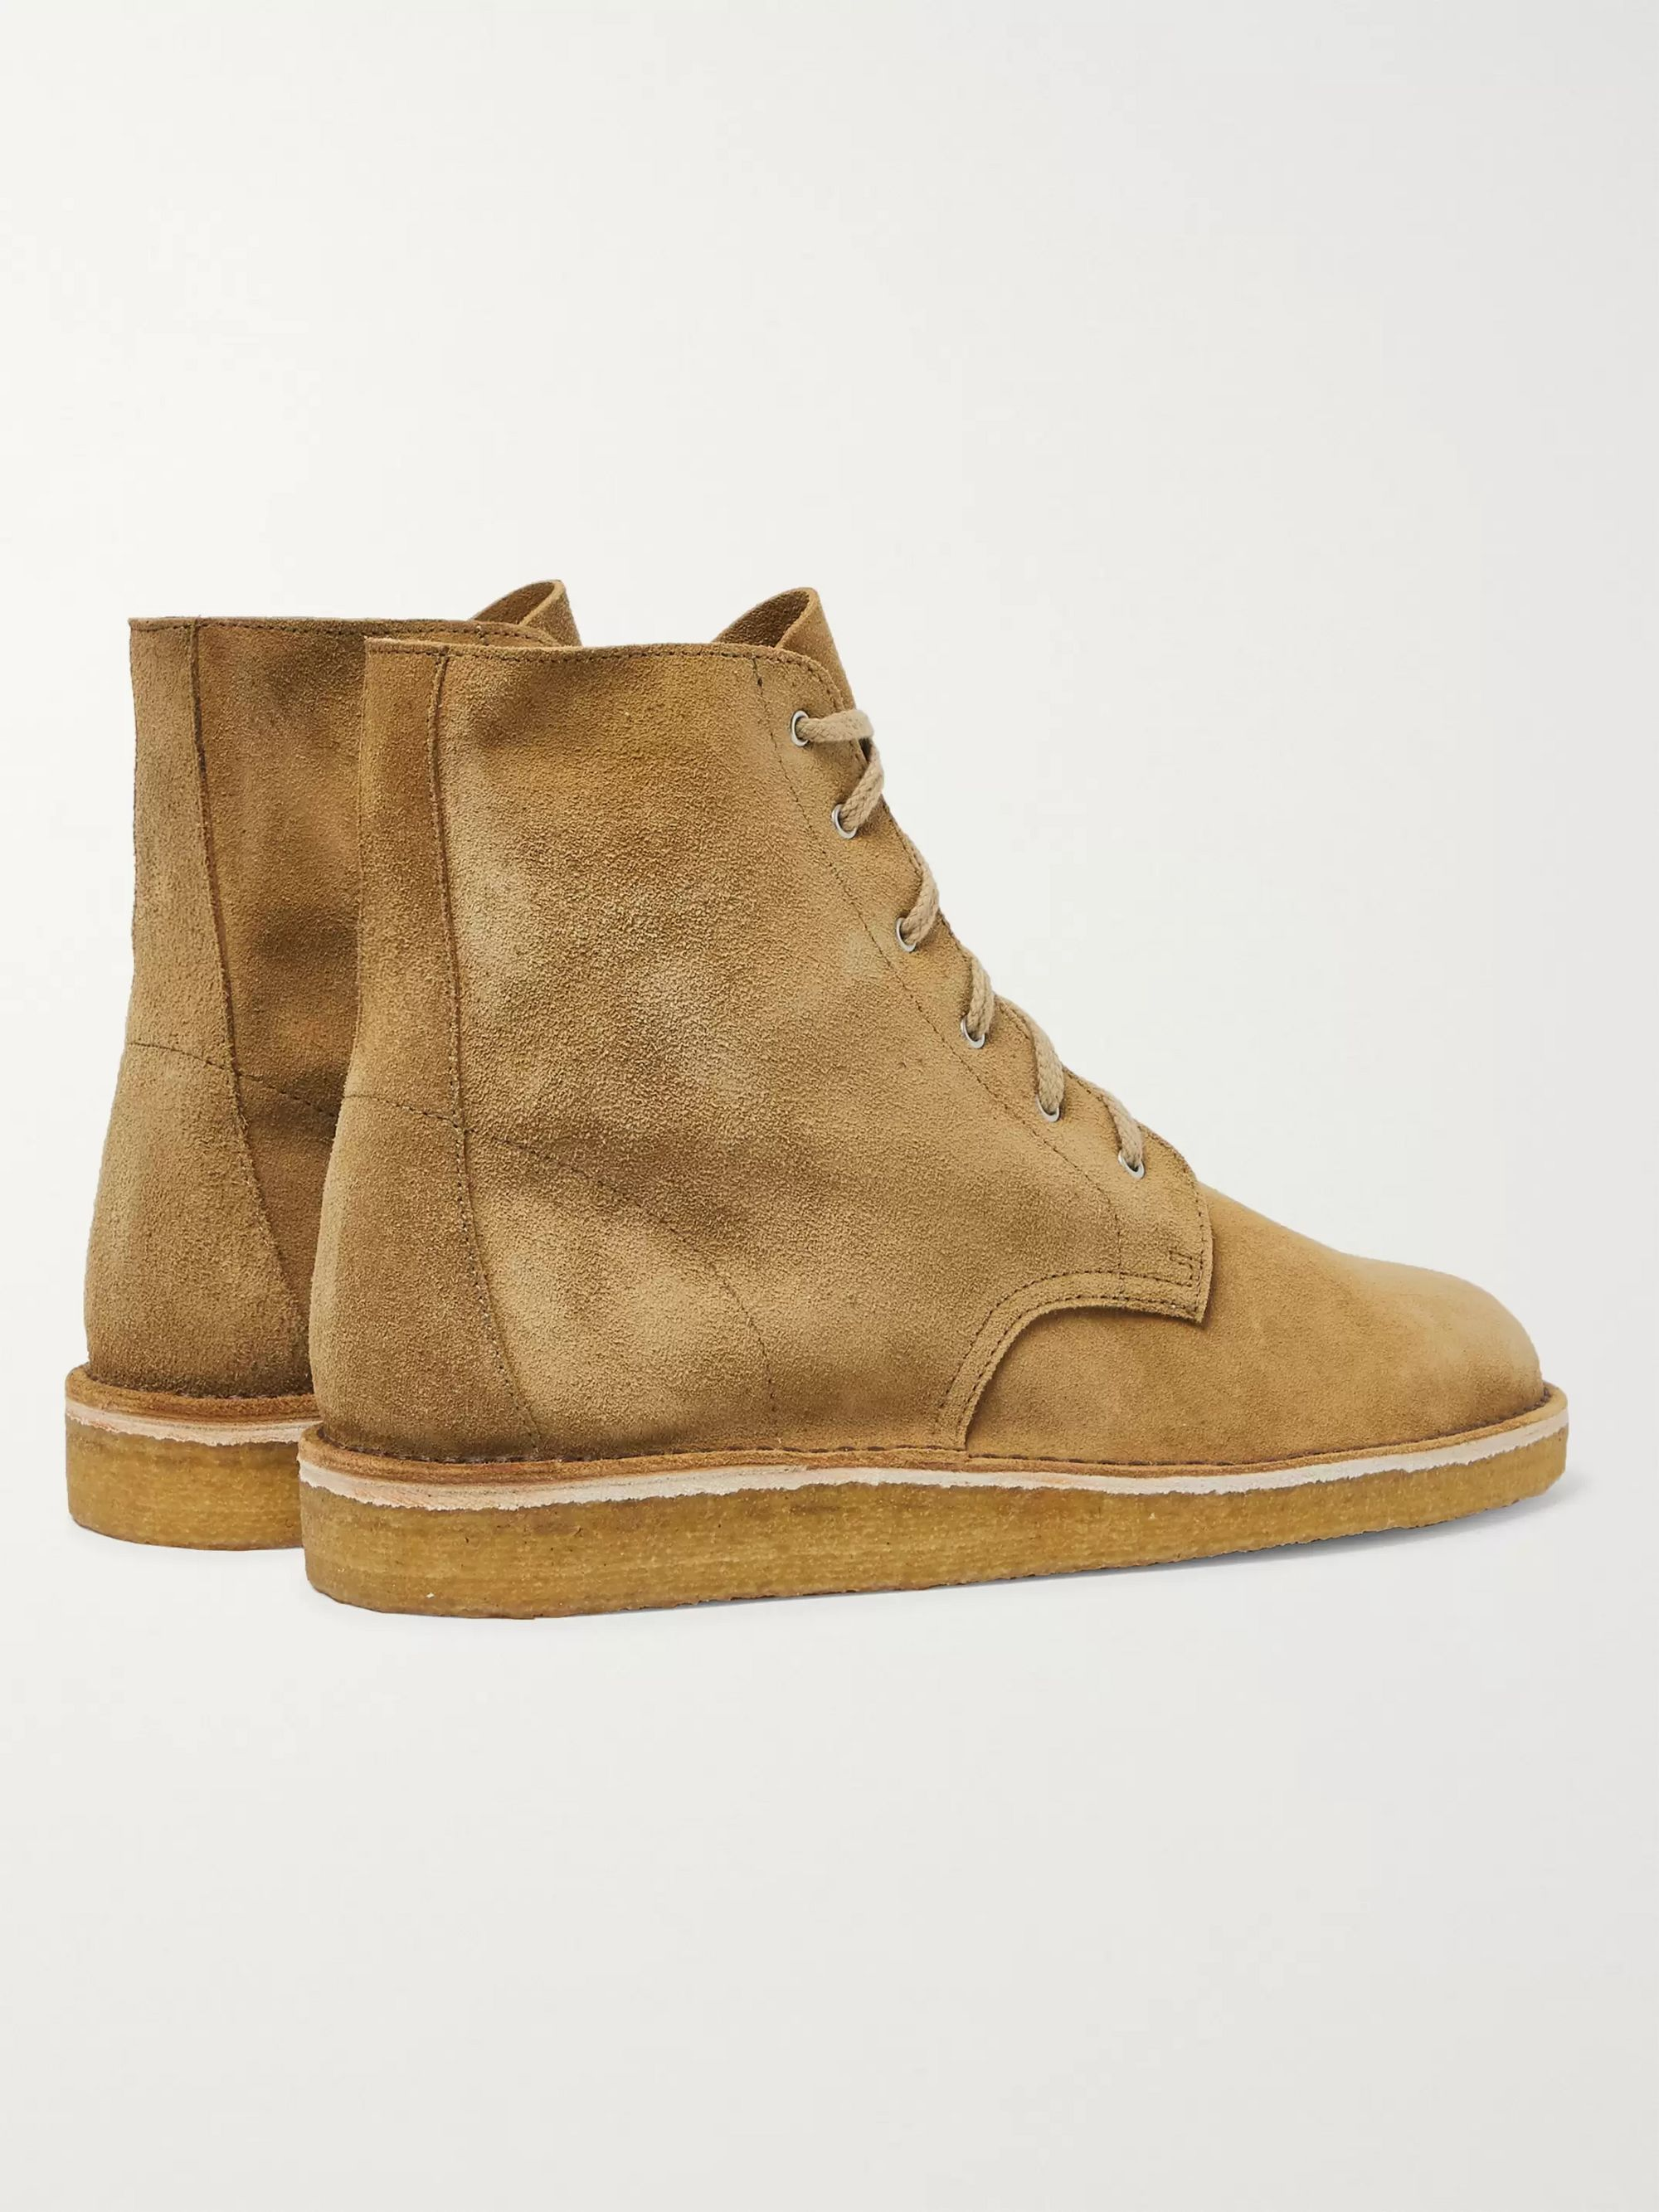 nonnative Officer Suede Desert Boots